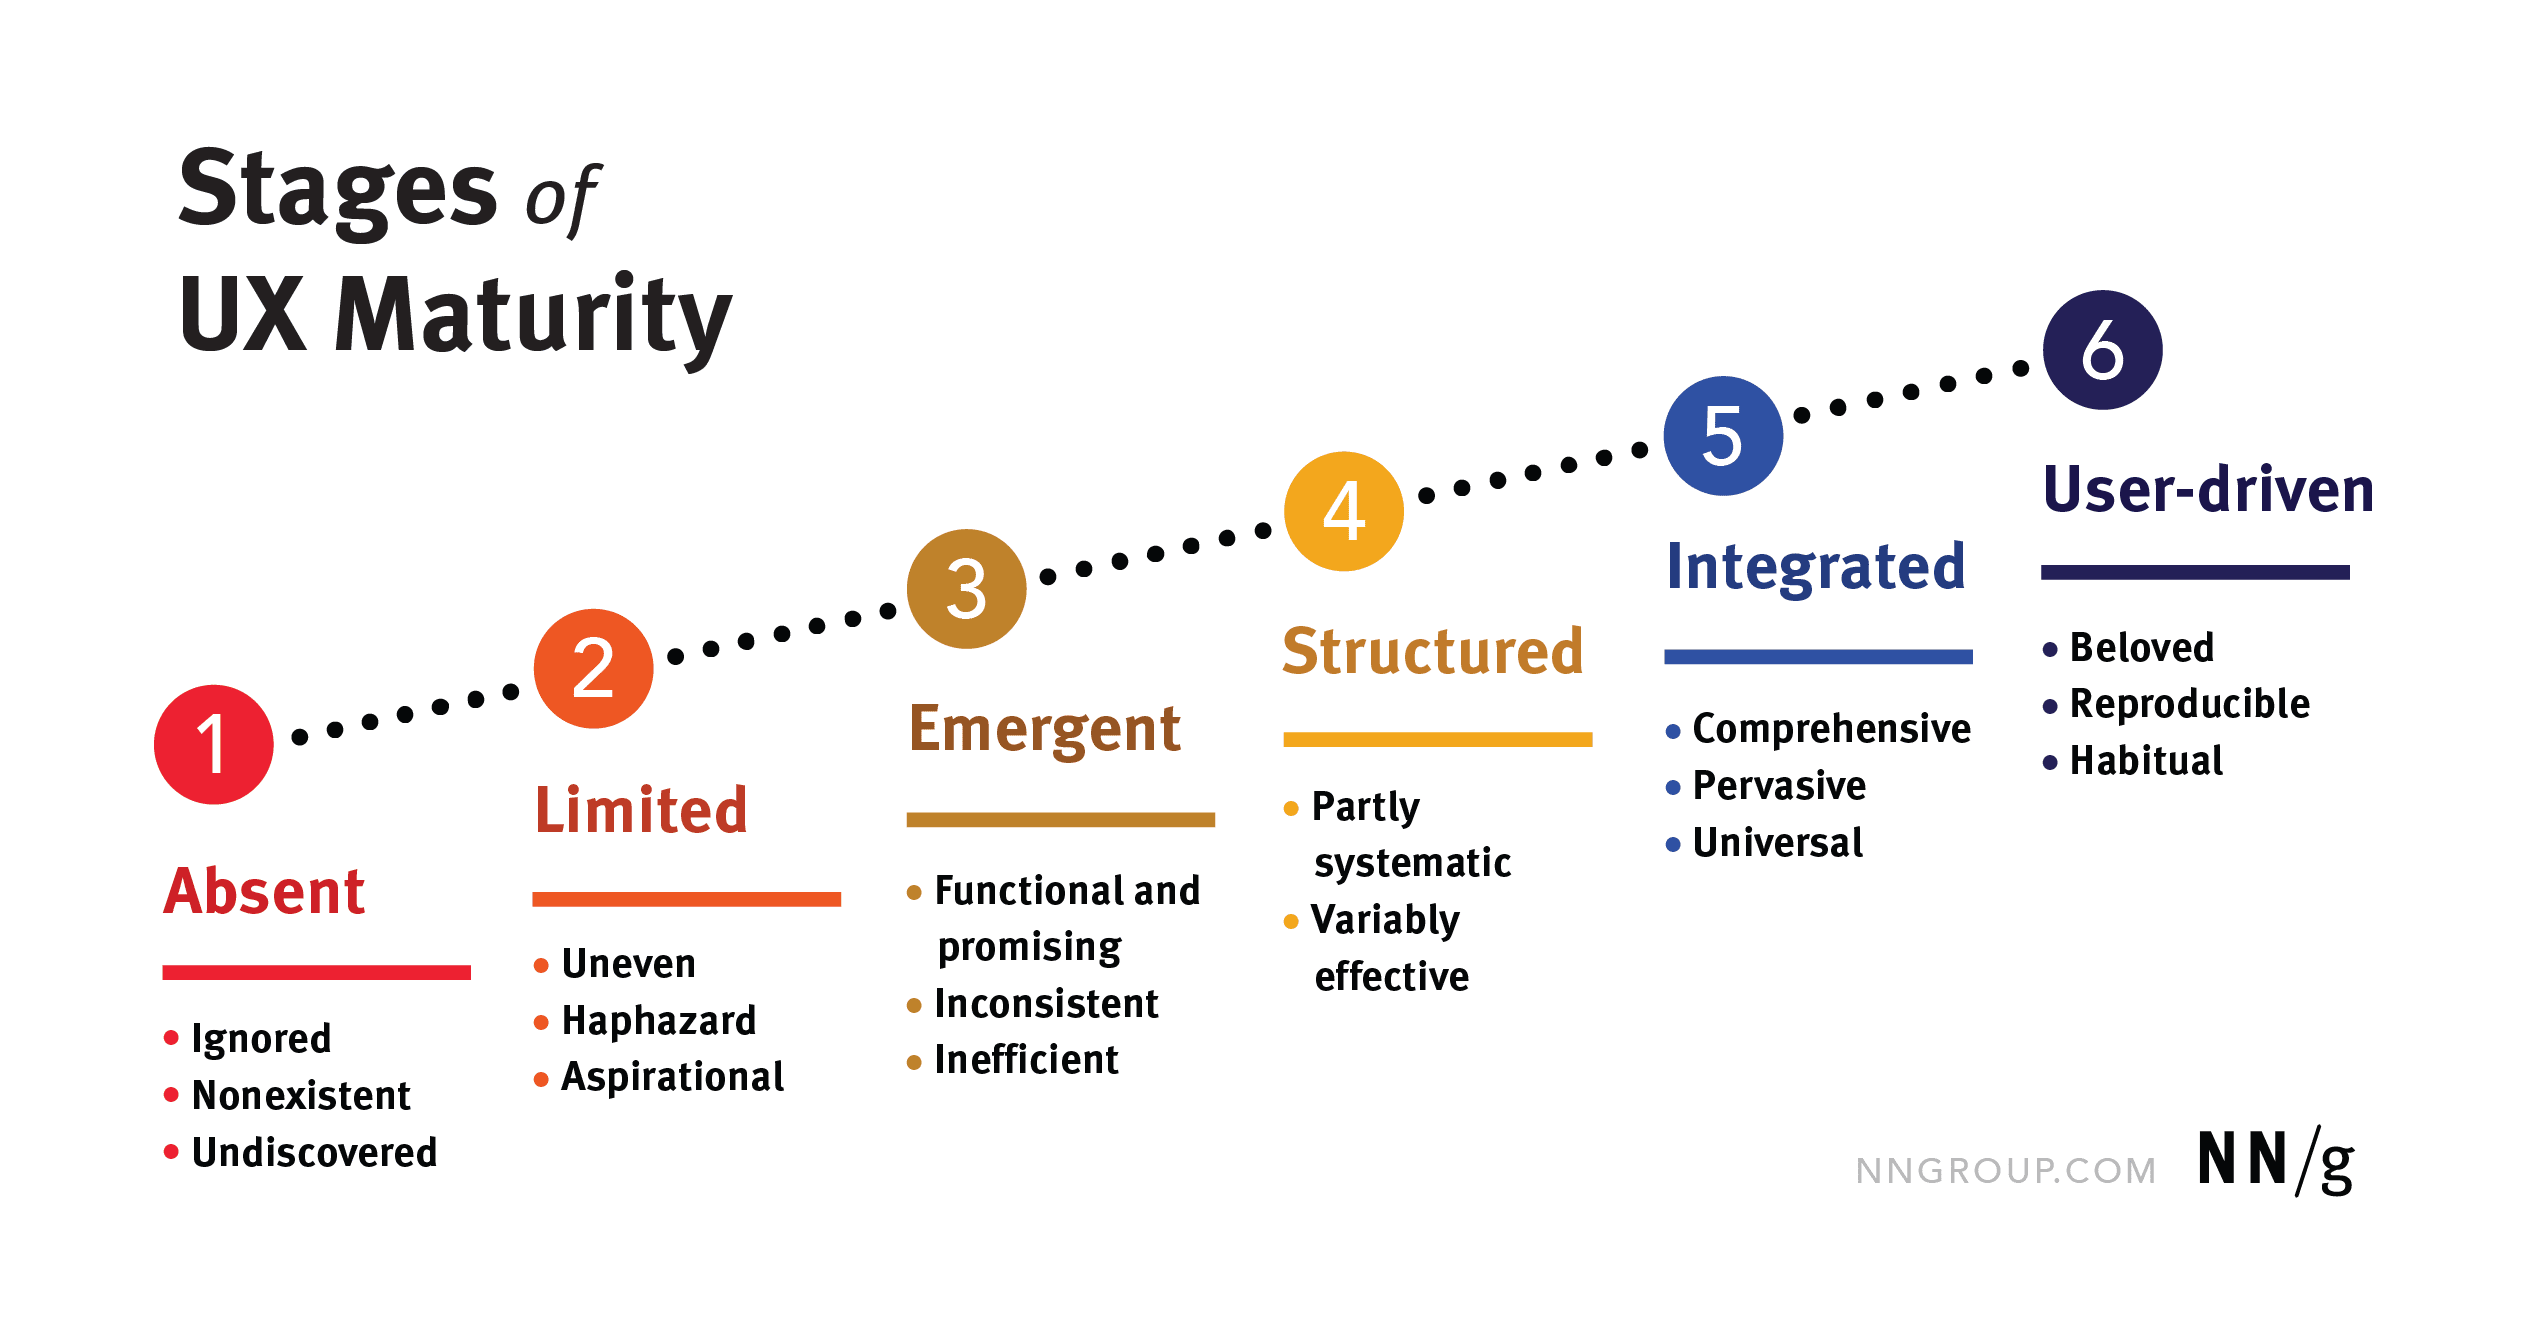 There are six stages in the UX maturity model: 1: Absent, 2: Limited, 3: Emergent, 4: Structured, 5: Integrated, and 6: User-Driven.